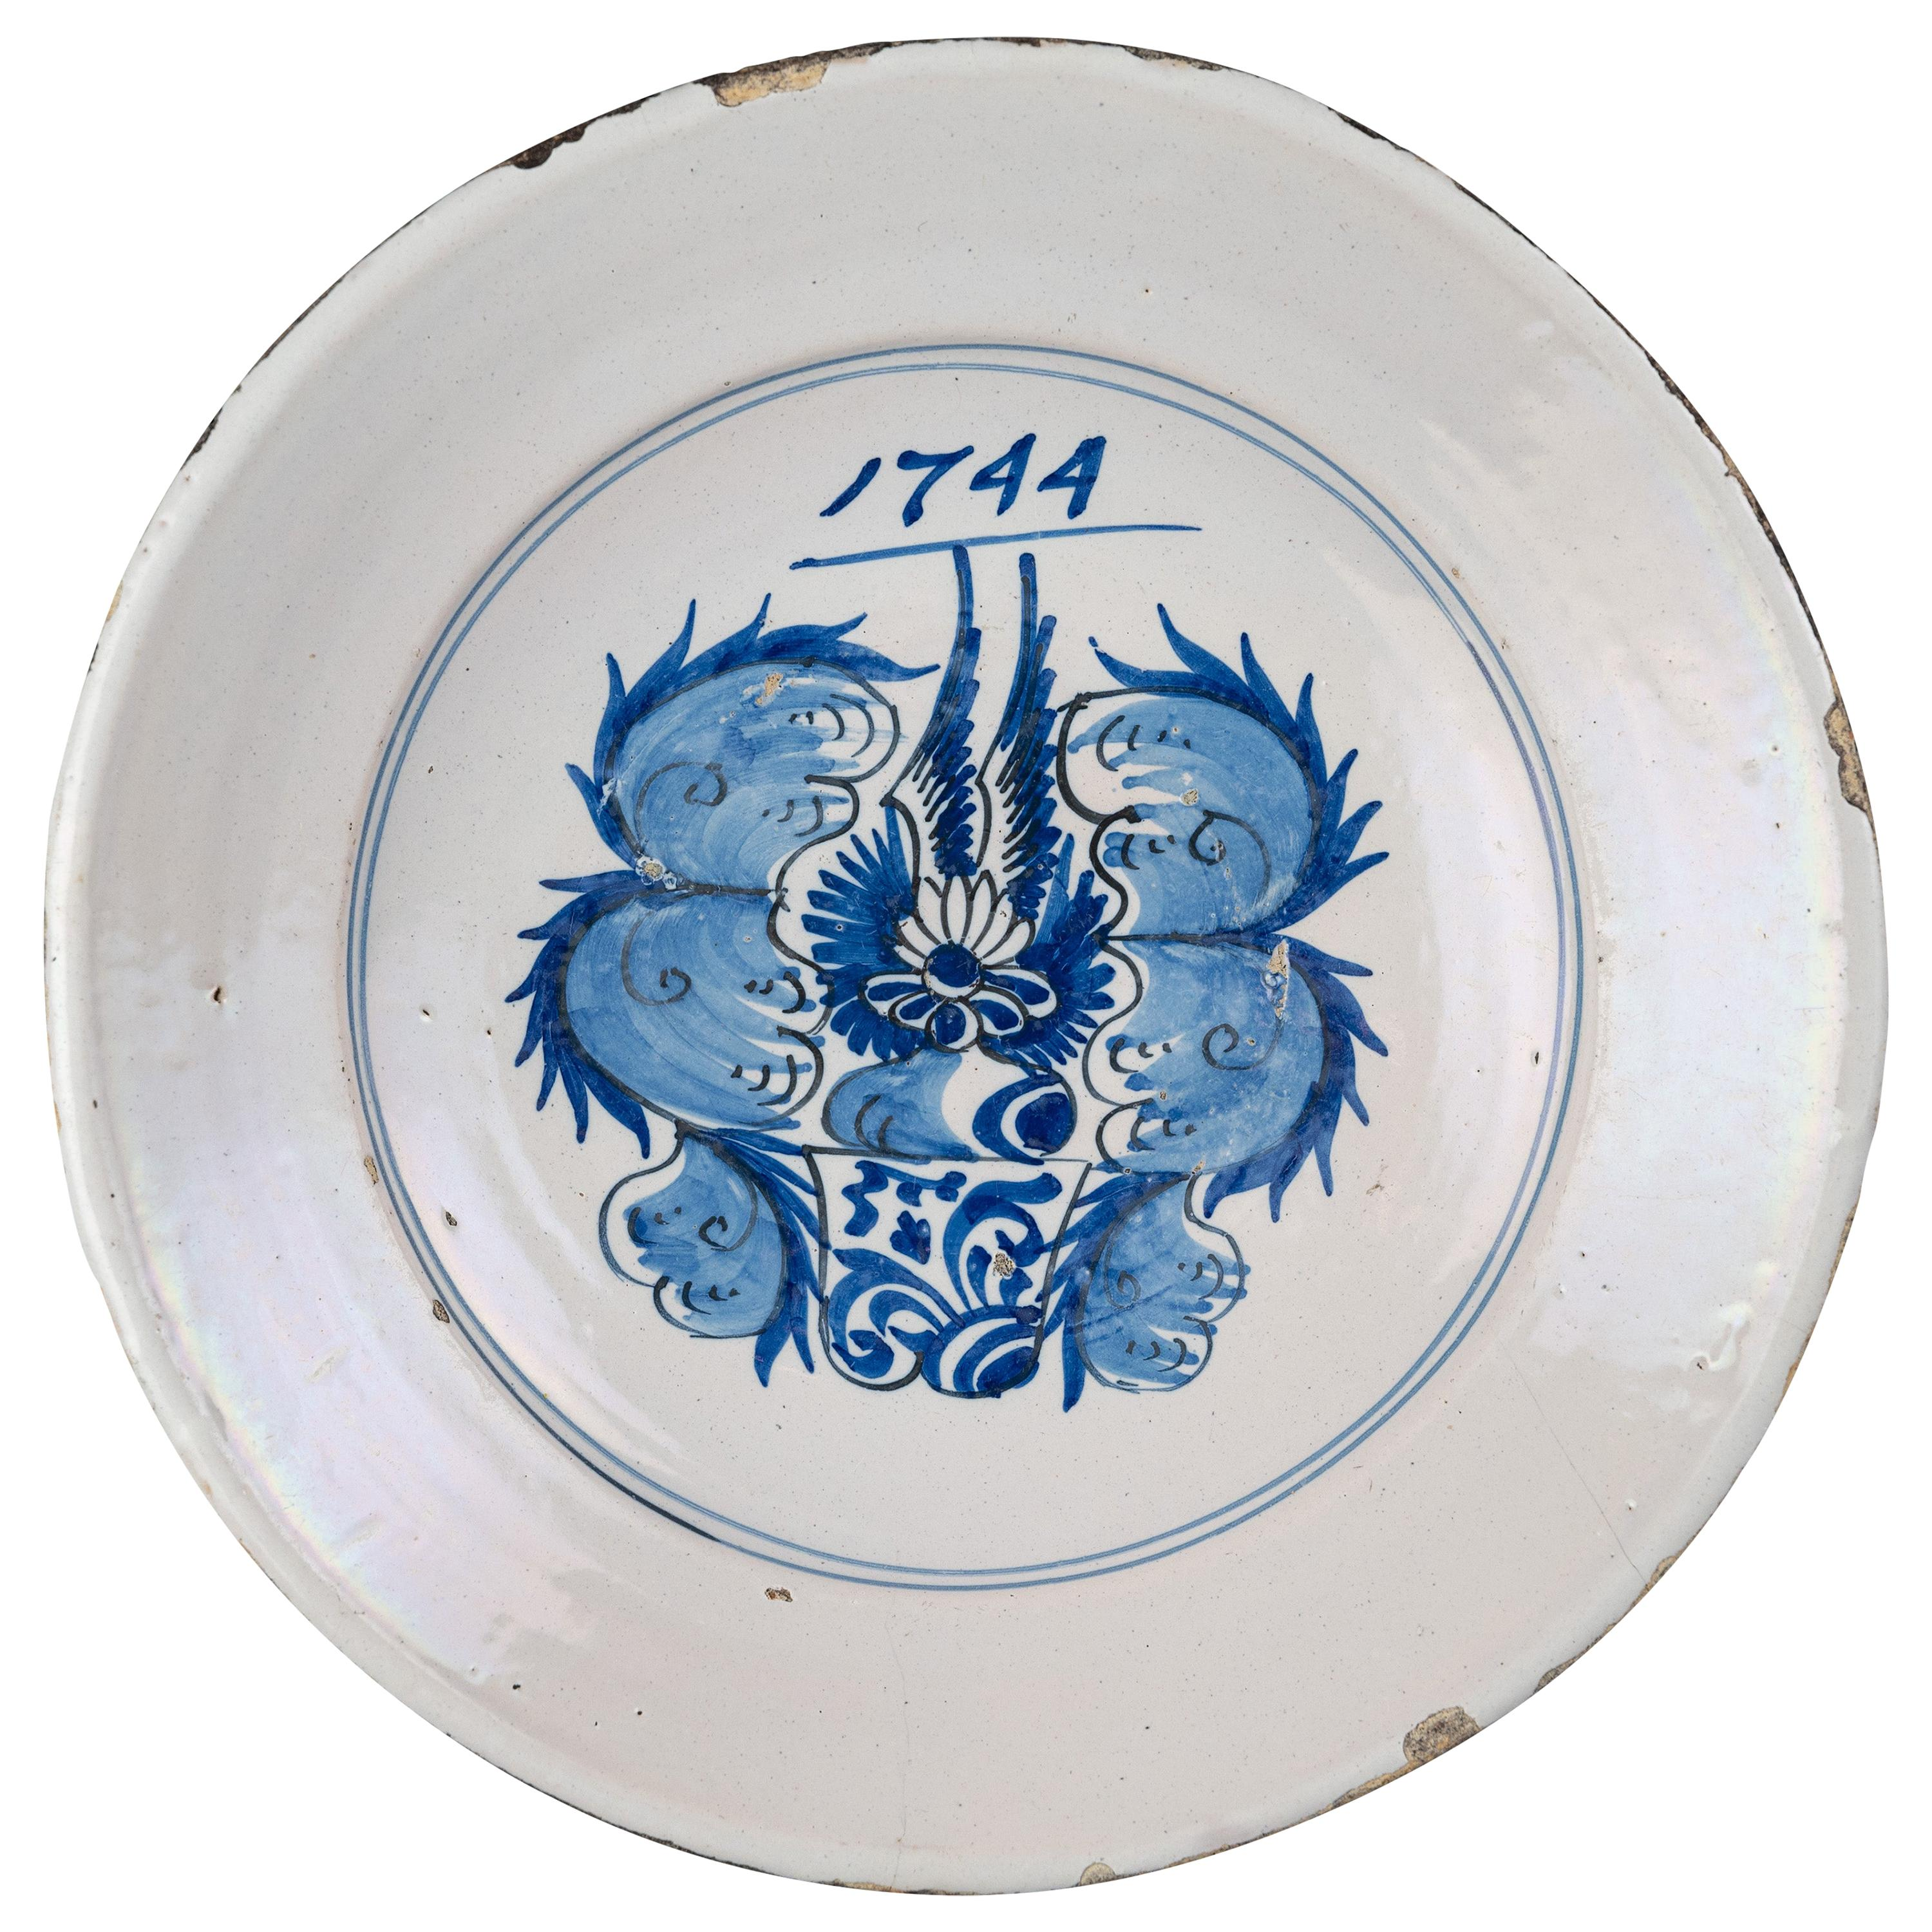 Delftware, Blue and White Armorial Dish, Harlingen Dated 1744